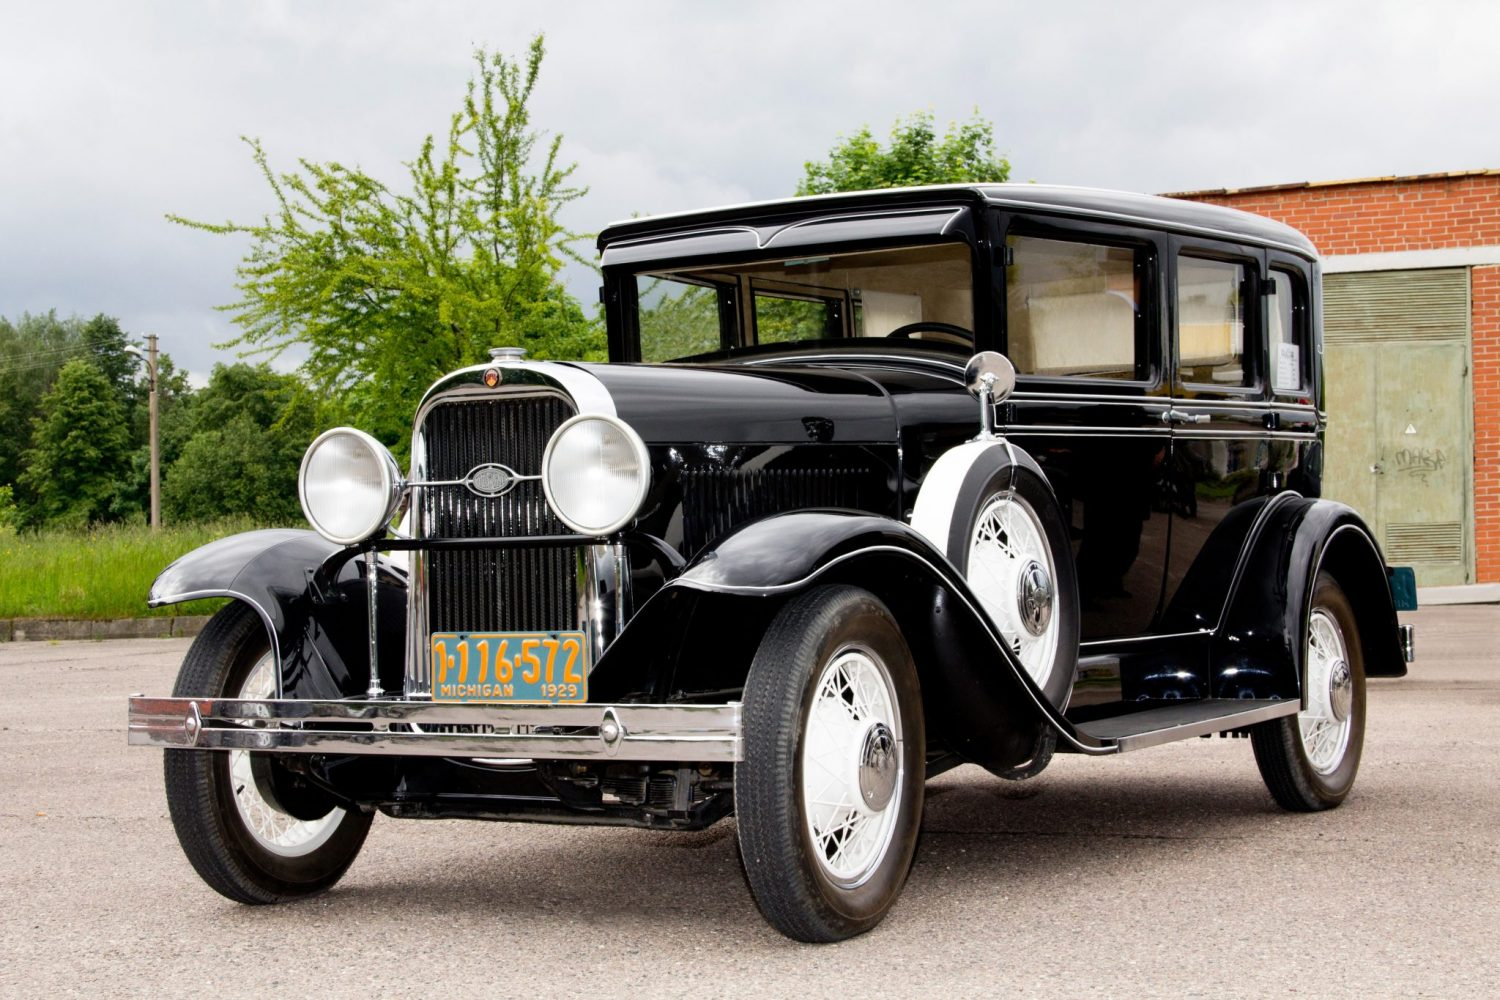 Oldsmobile, Model F-29 Landau Sedan–DeLux, 1929 m.